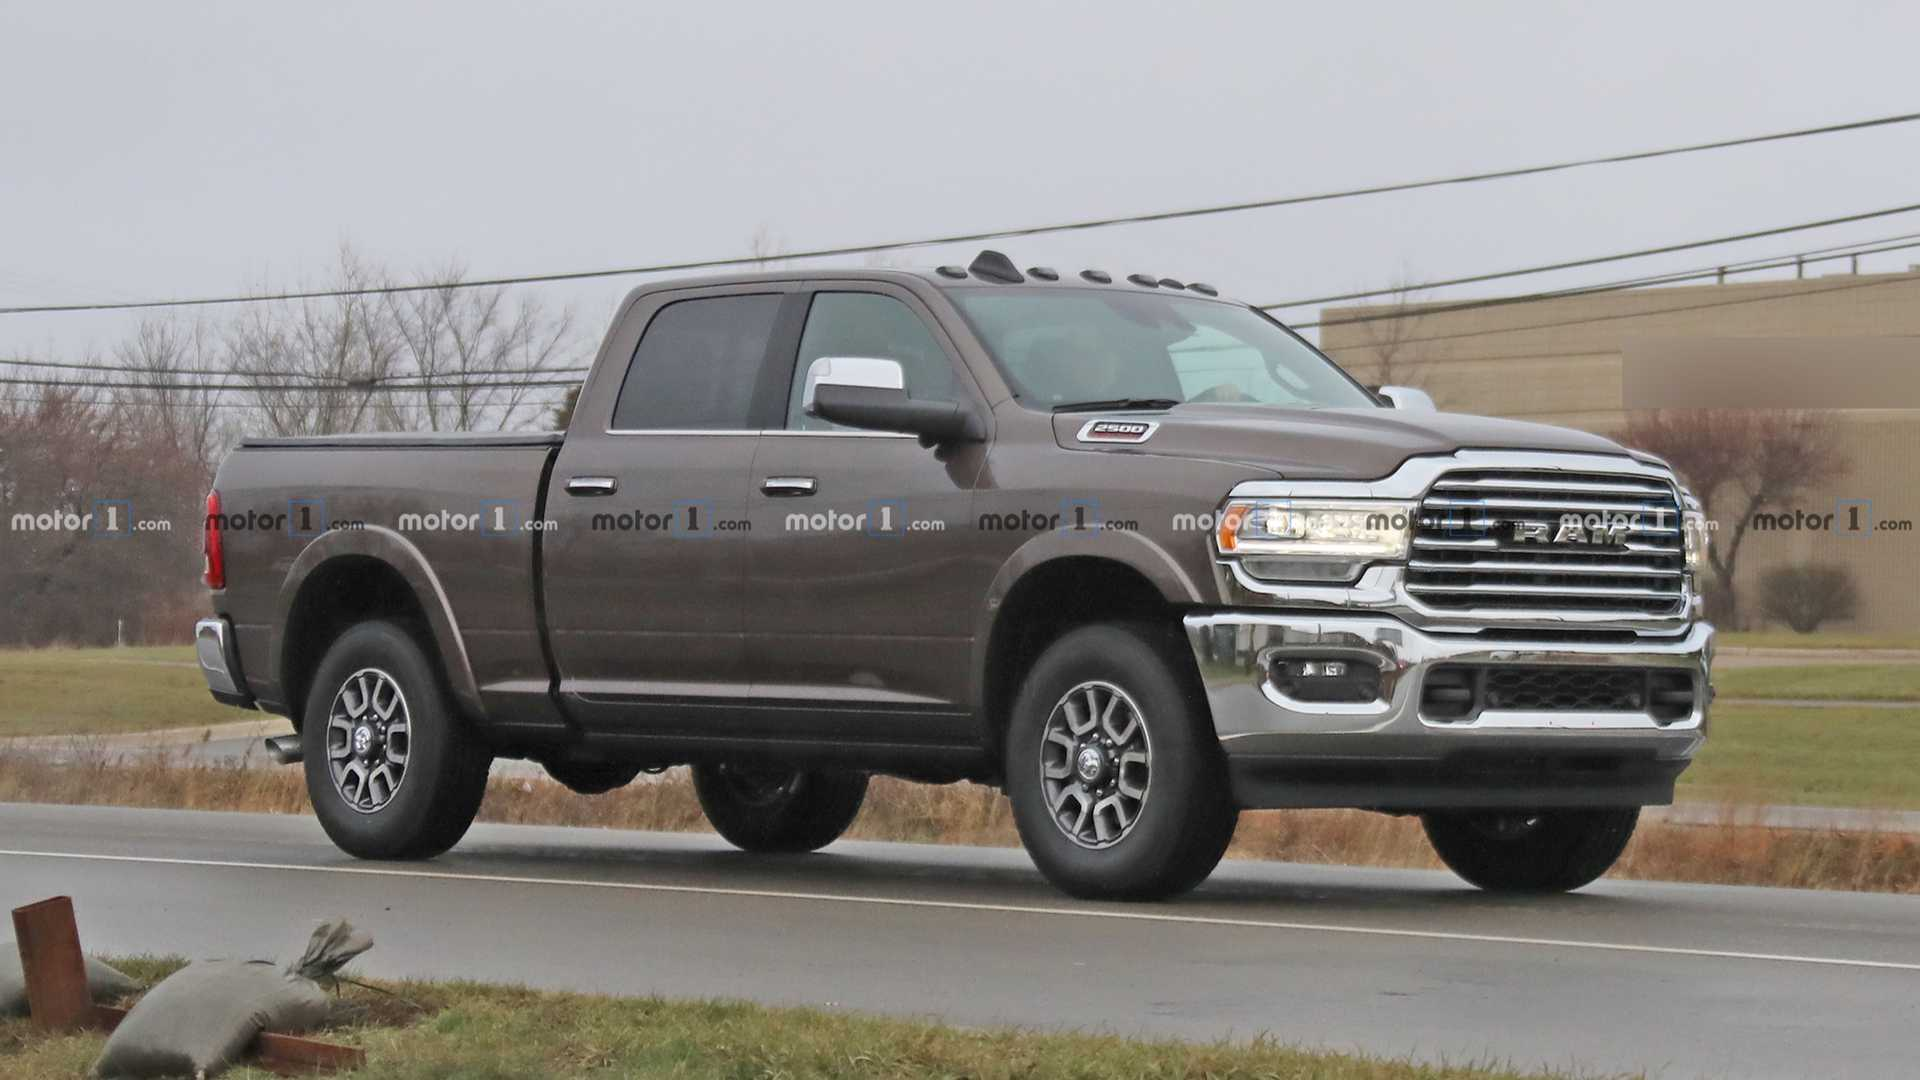 43 New Dodge Ram 3500 Diesel 2020 Rumors